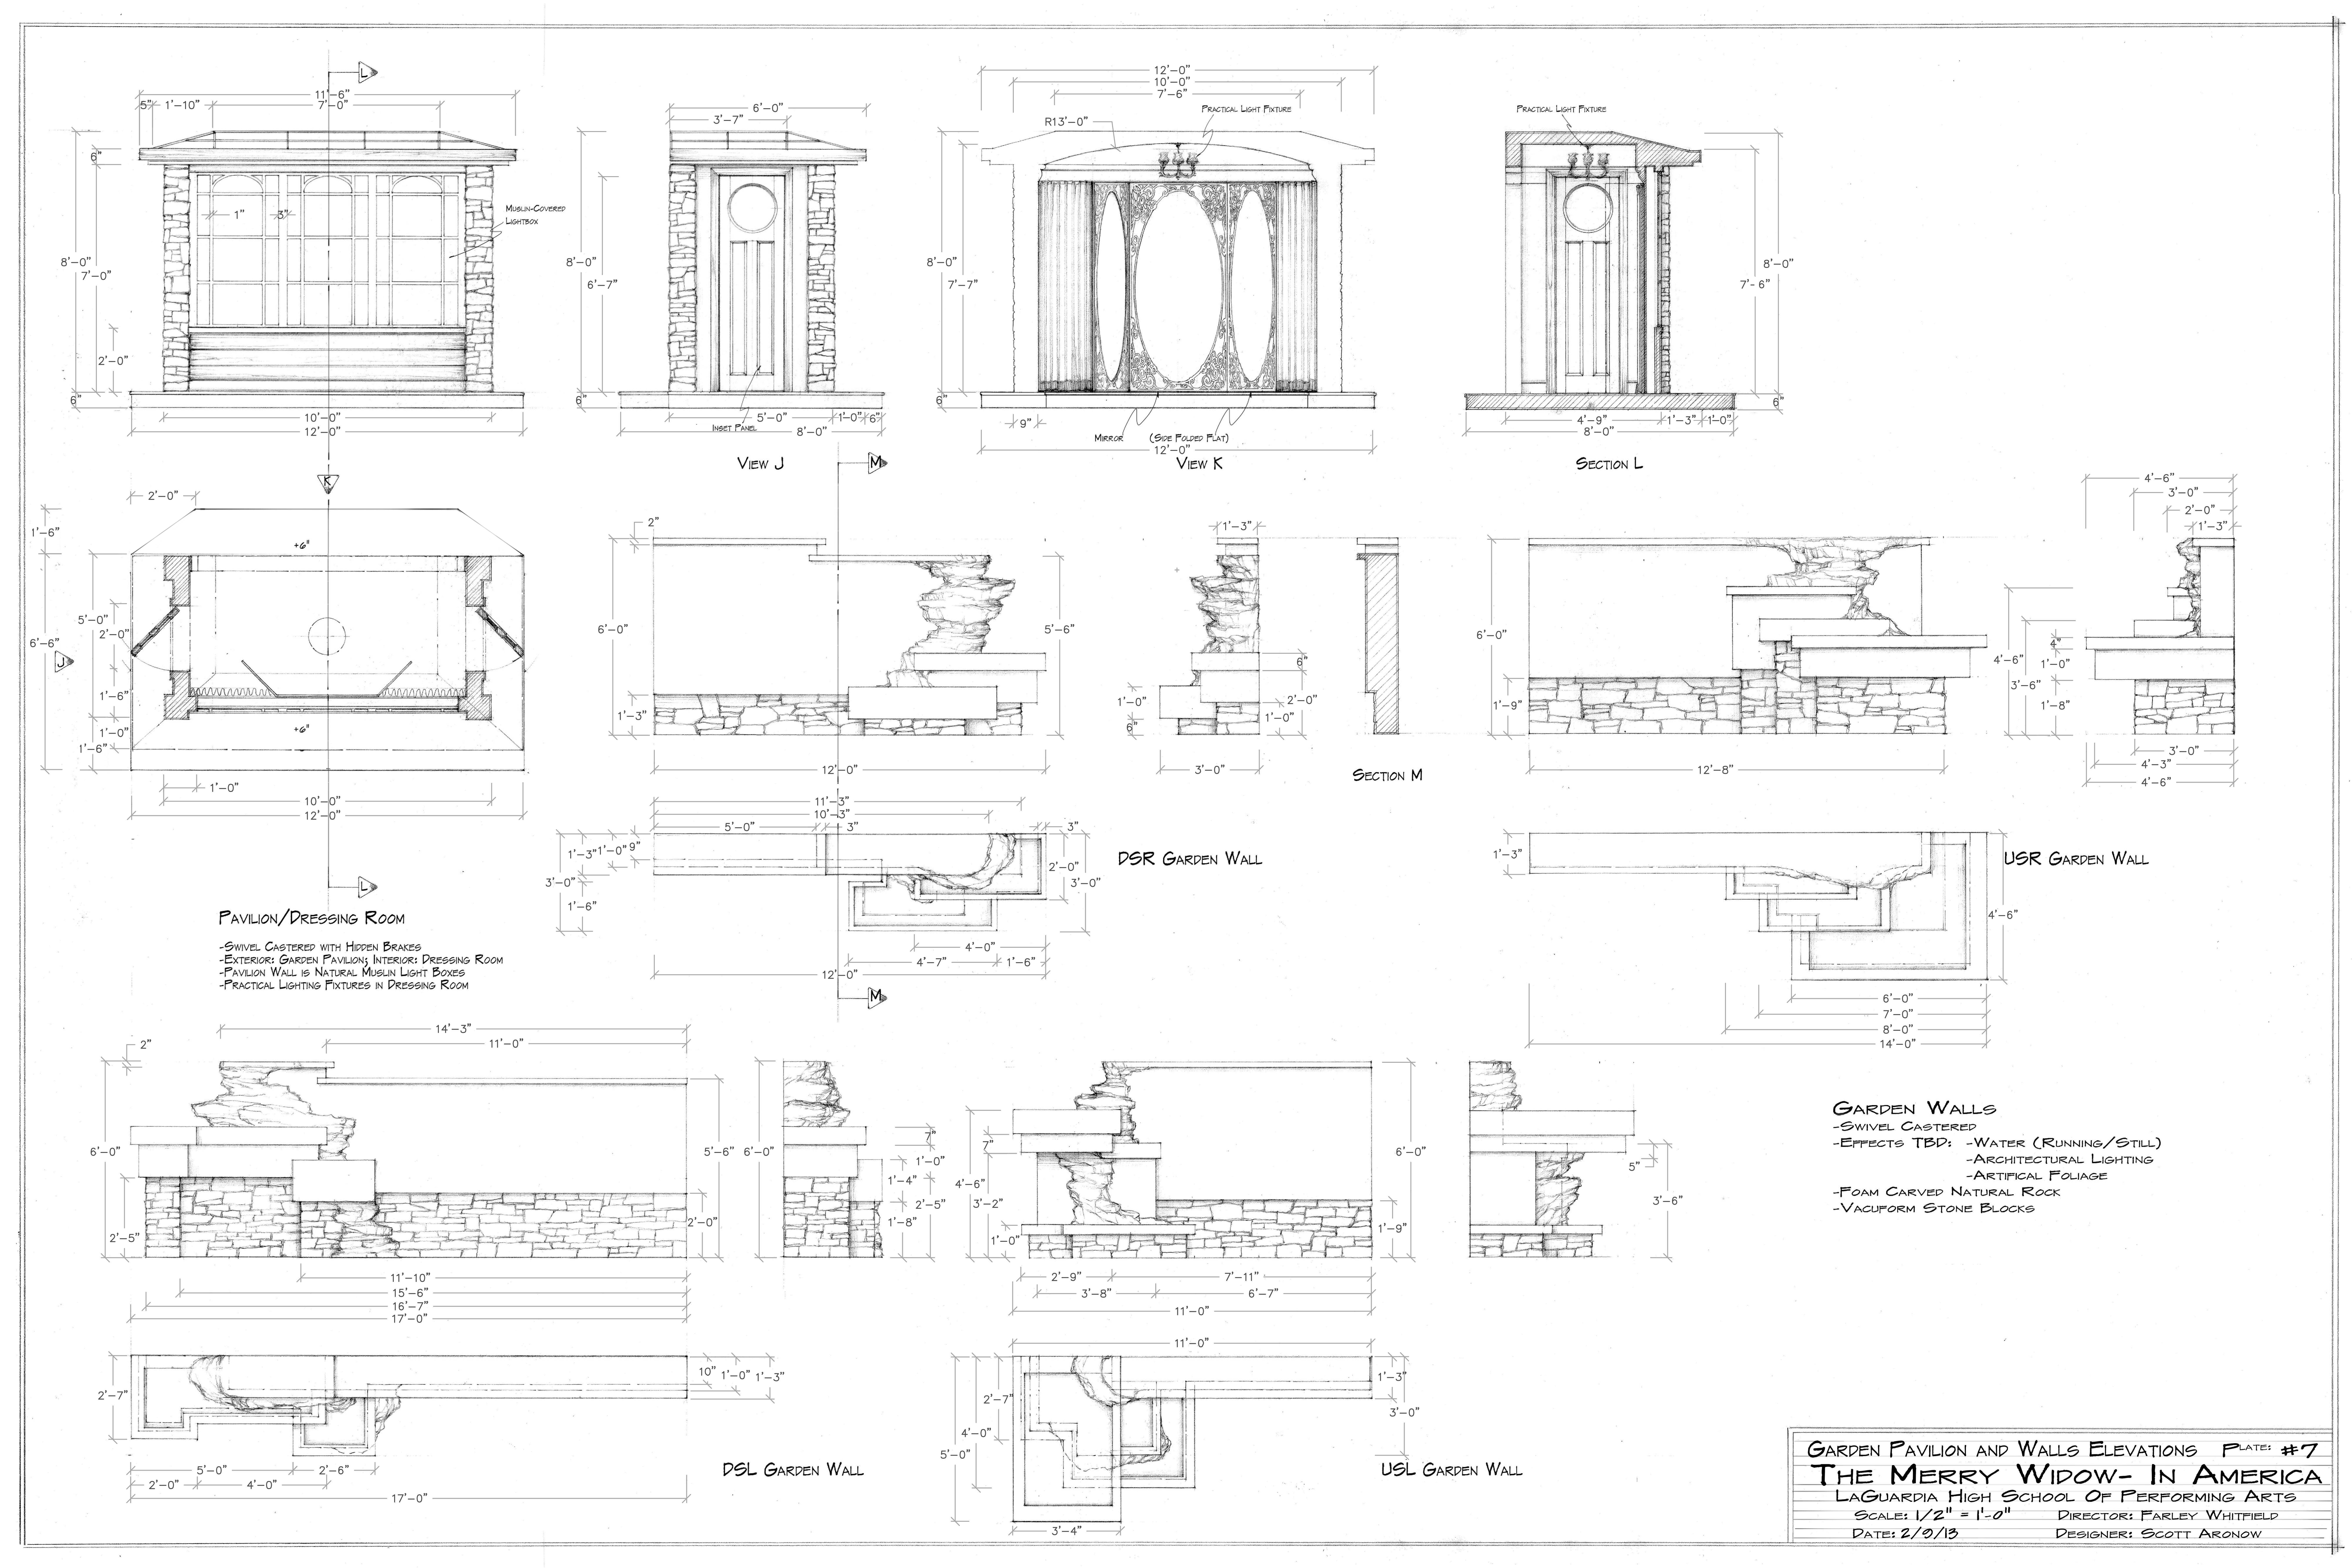 Plate #7. Garden Pavilion and Walls